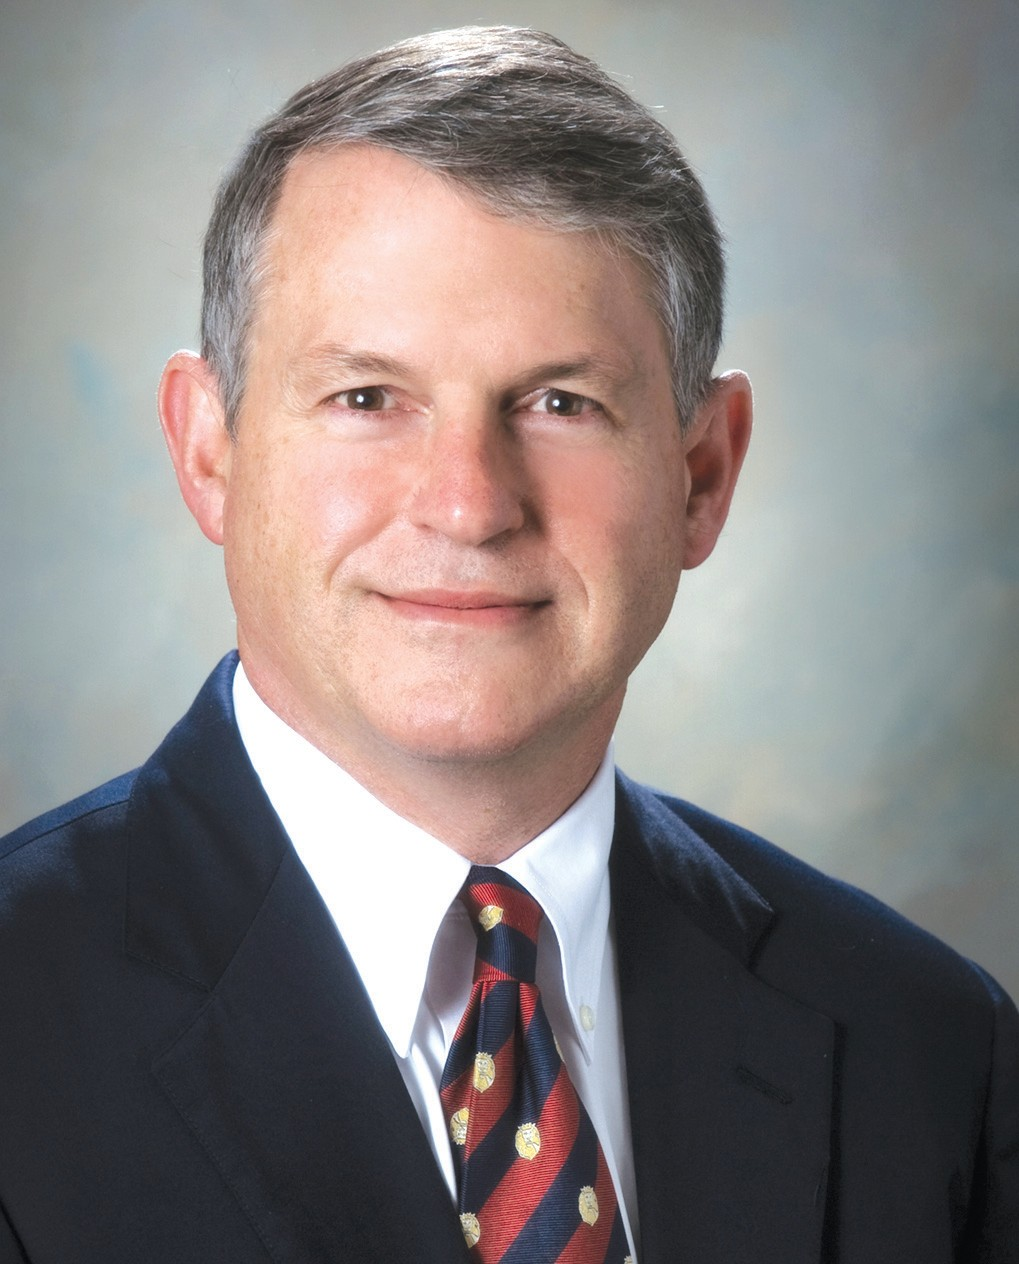 Hatton Smith, president and chief executive officer of Royal Cup Coffee, will address chamber of commerce patrons at the monthly breakfast on Wednesday, Oct. 23, at Twin Oaks at Heritage Green. He will discuss managing a company during perilous economic times and give his interpretation of the economic outlook upcoming. Smith resides in Mountain Brook. His main interests, besides the coffee industry, include the Episcopal church, Washington and Lee University, and various civic endeavors.